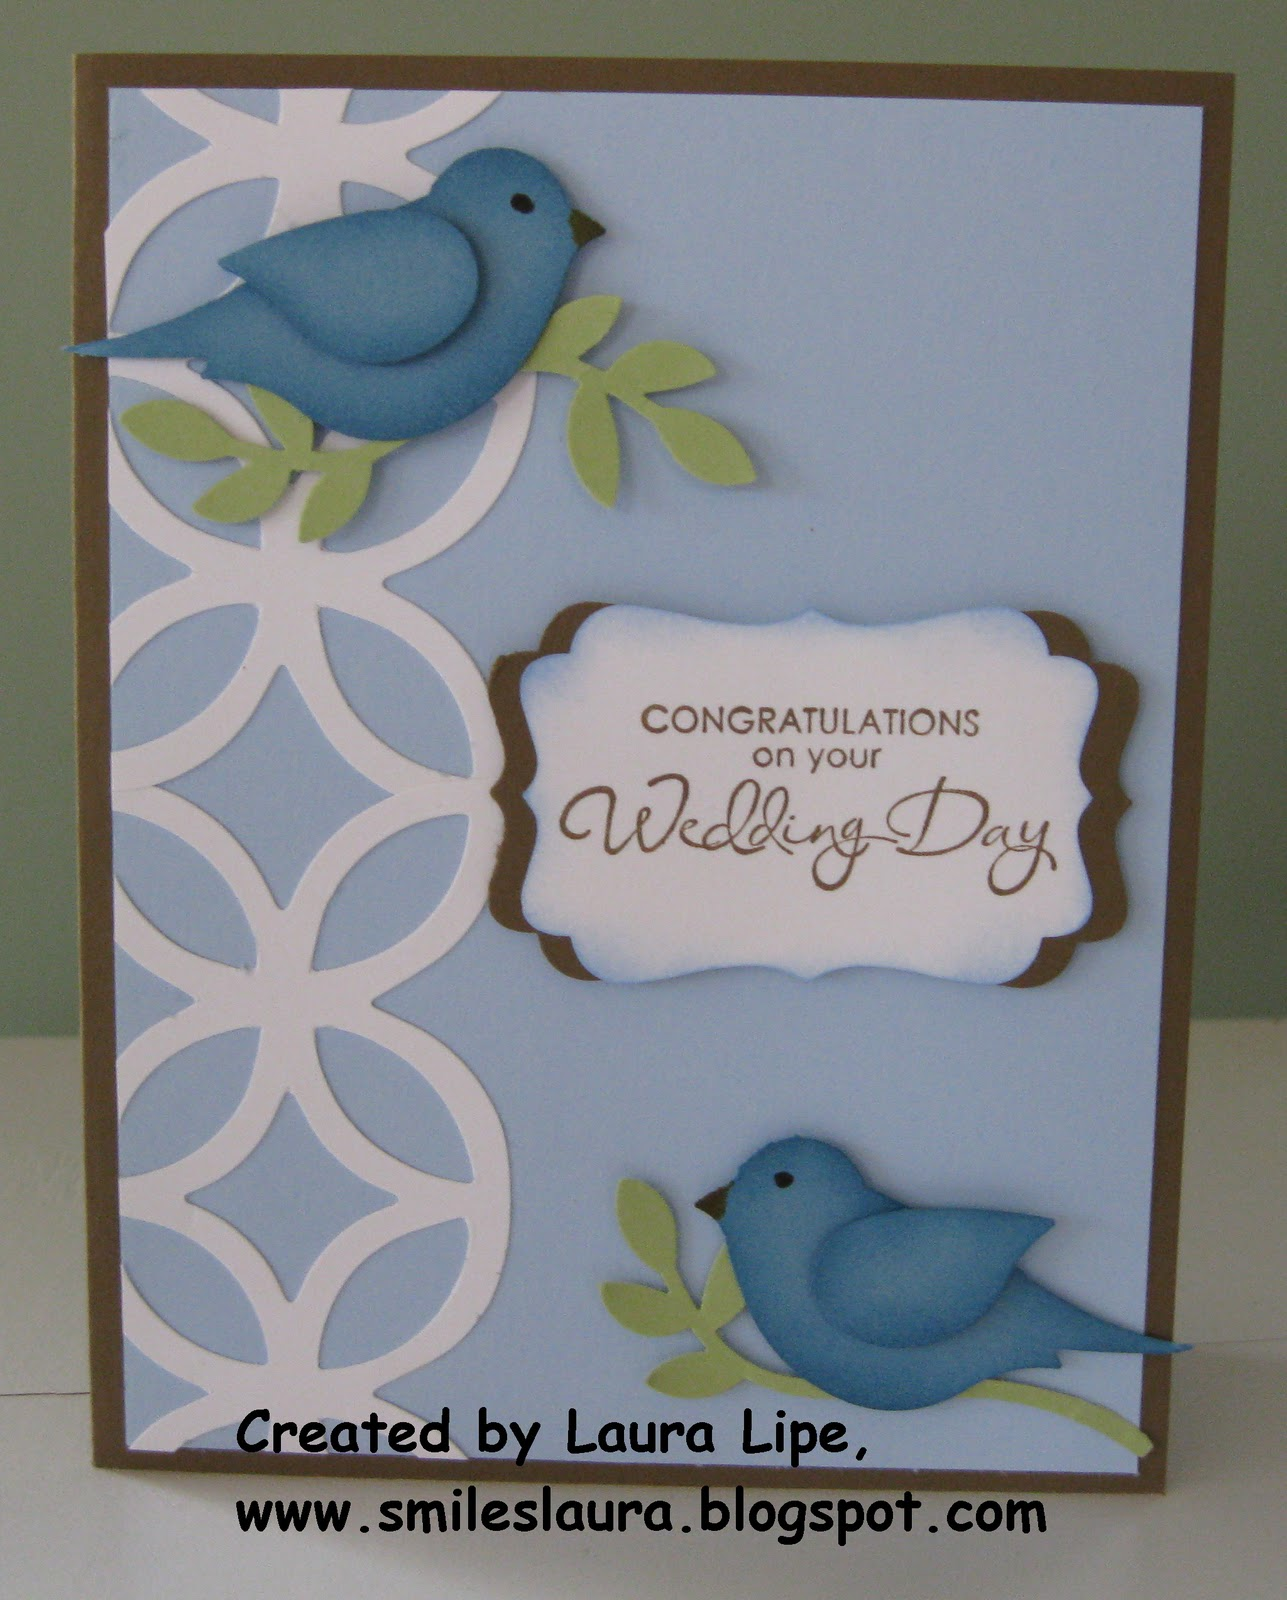 42nd Wedding Anniversary Quotes: Smiles, Laura: March 2011